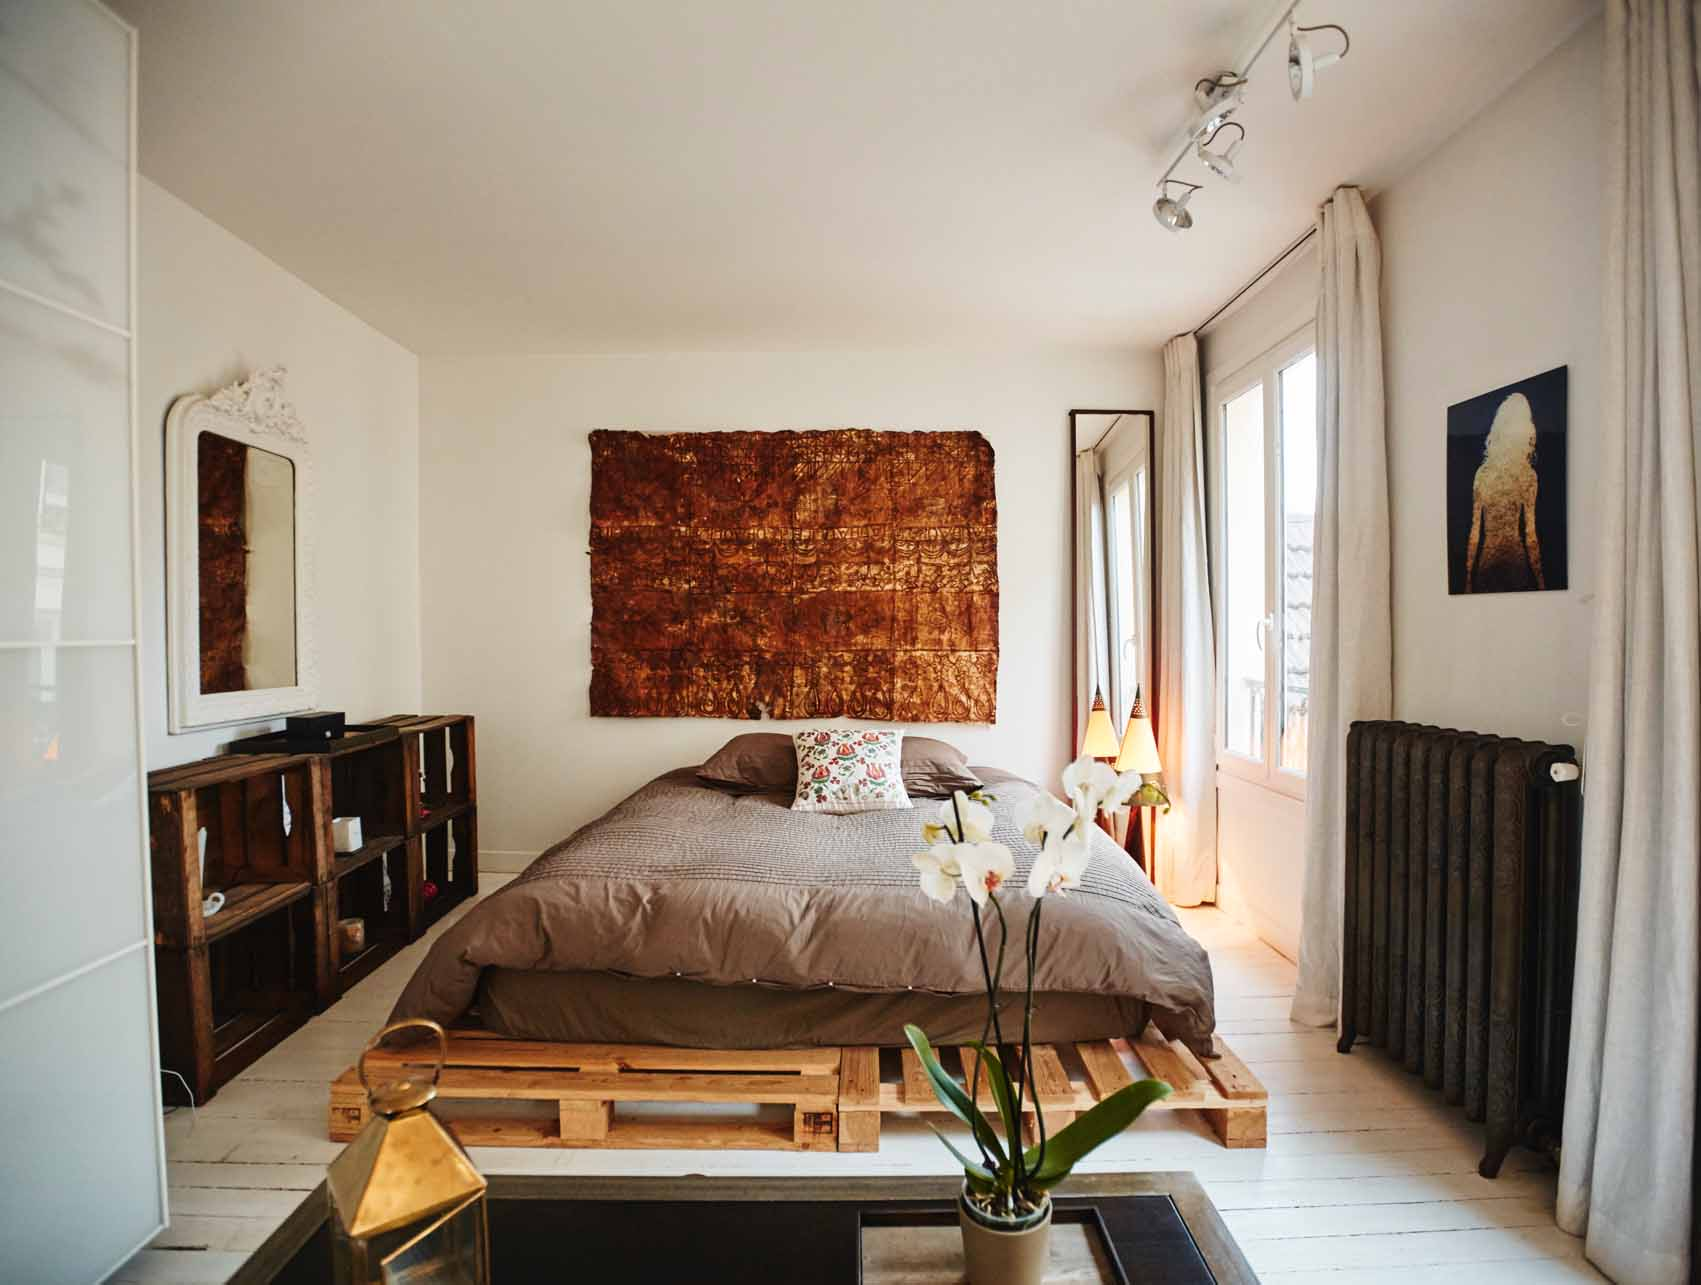 Airbnb: What's the hold up for London?